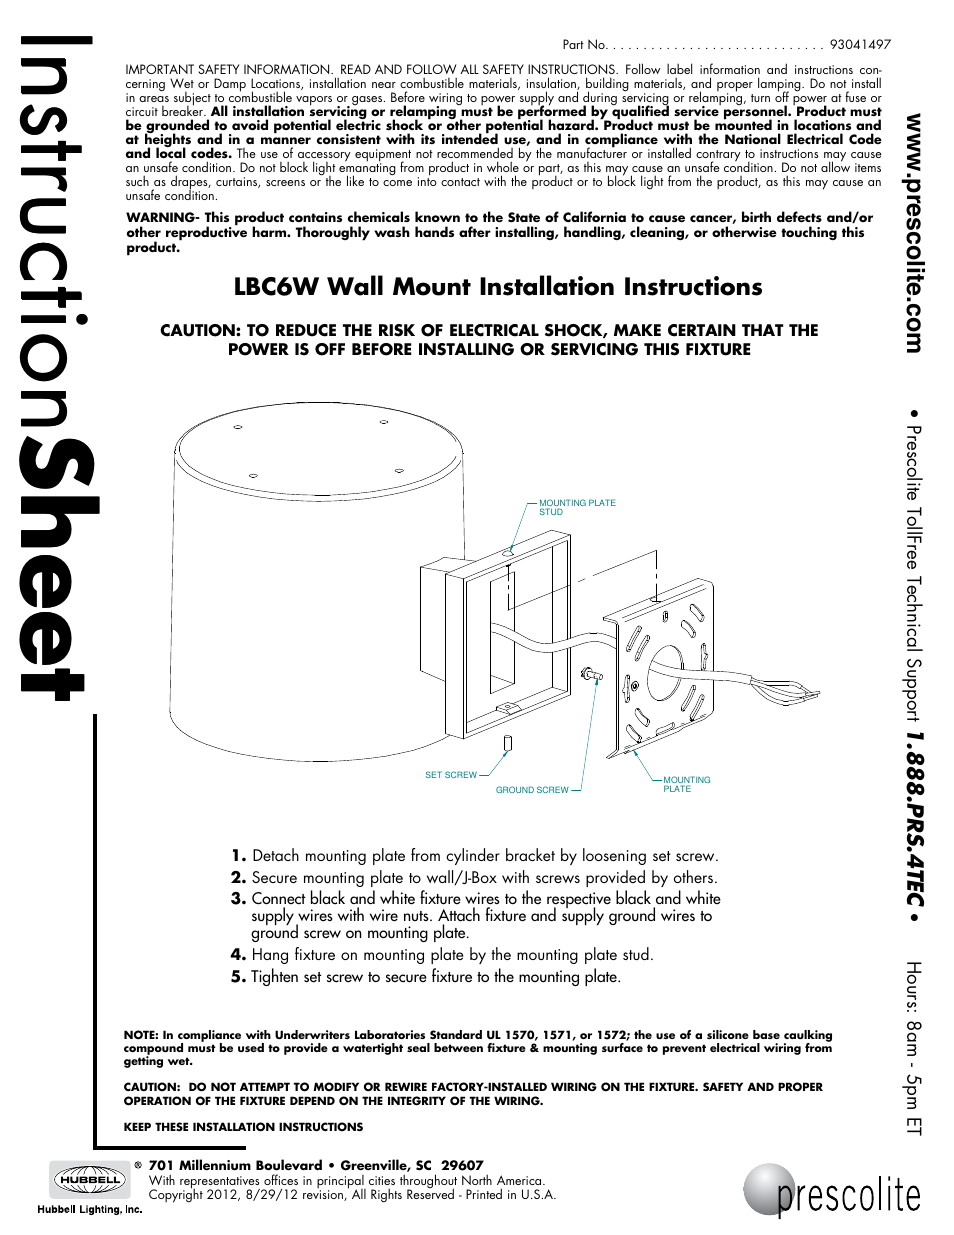 Prescolite Lbc6w Wall Mount User Manual 1 Page Installing Mounted Lighting How To Install A New Electrical